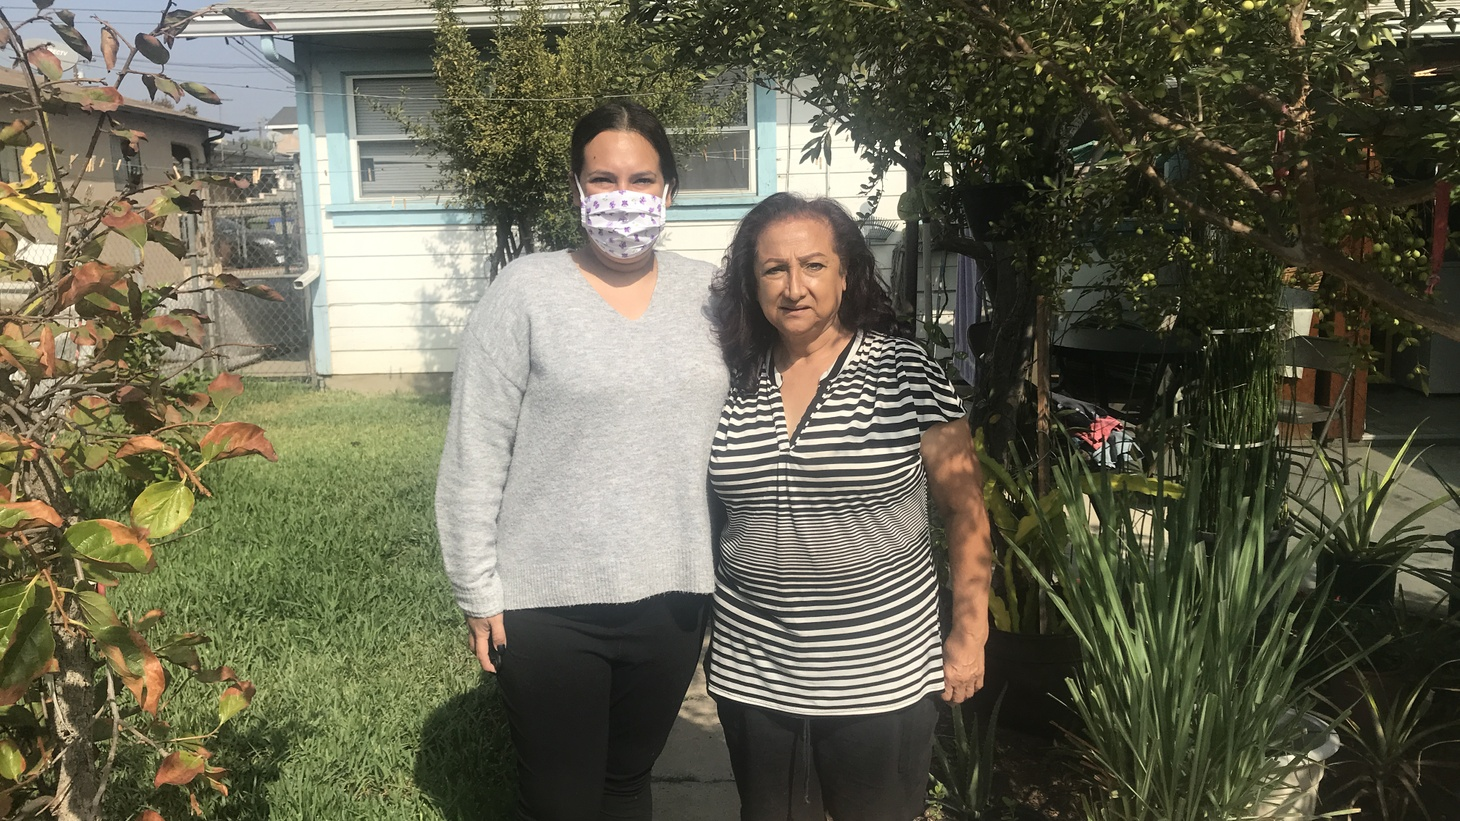 Guadalupe Valdovinos (left) and her mother Lourdes in their backyard in East Los Angeles. Their home is among hundreds that have been cleaned by the state due to elevated lead levels in the soil. However, Valdovinos still feels like she's in danger.